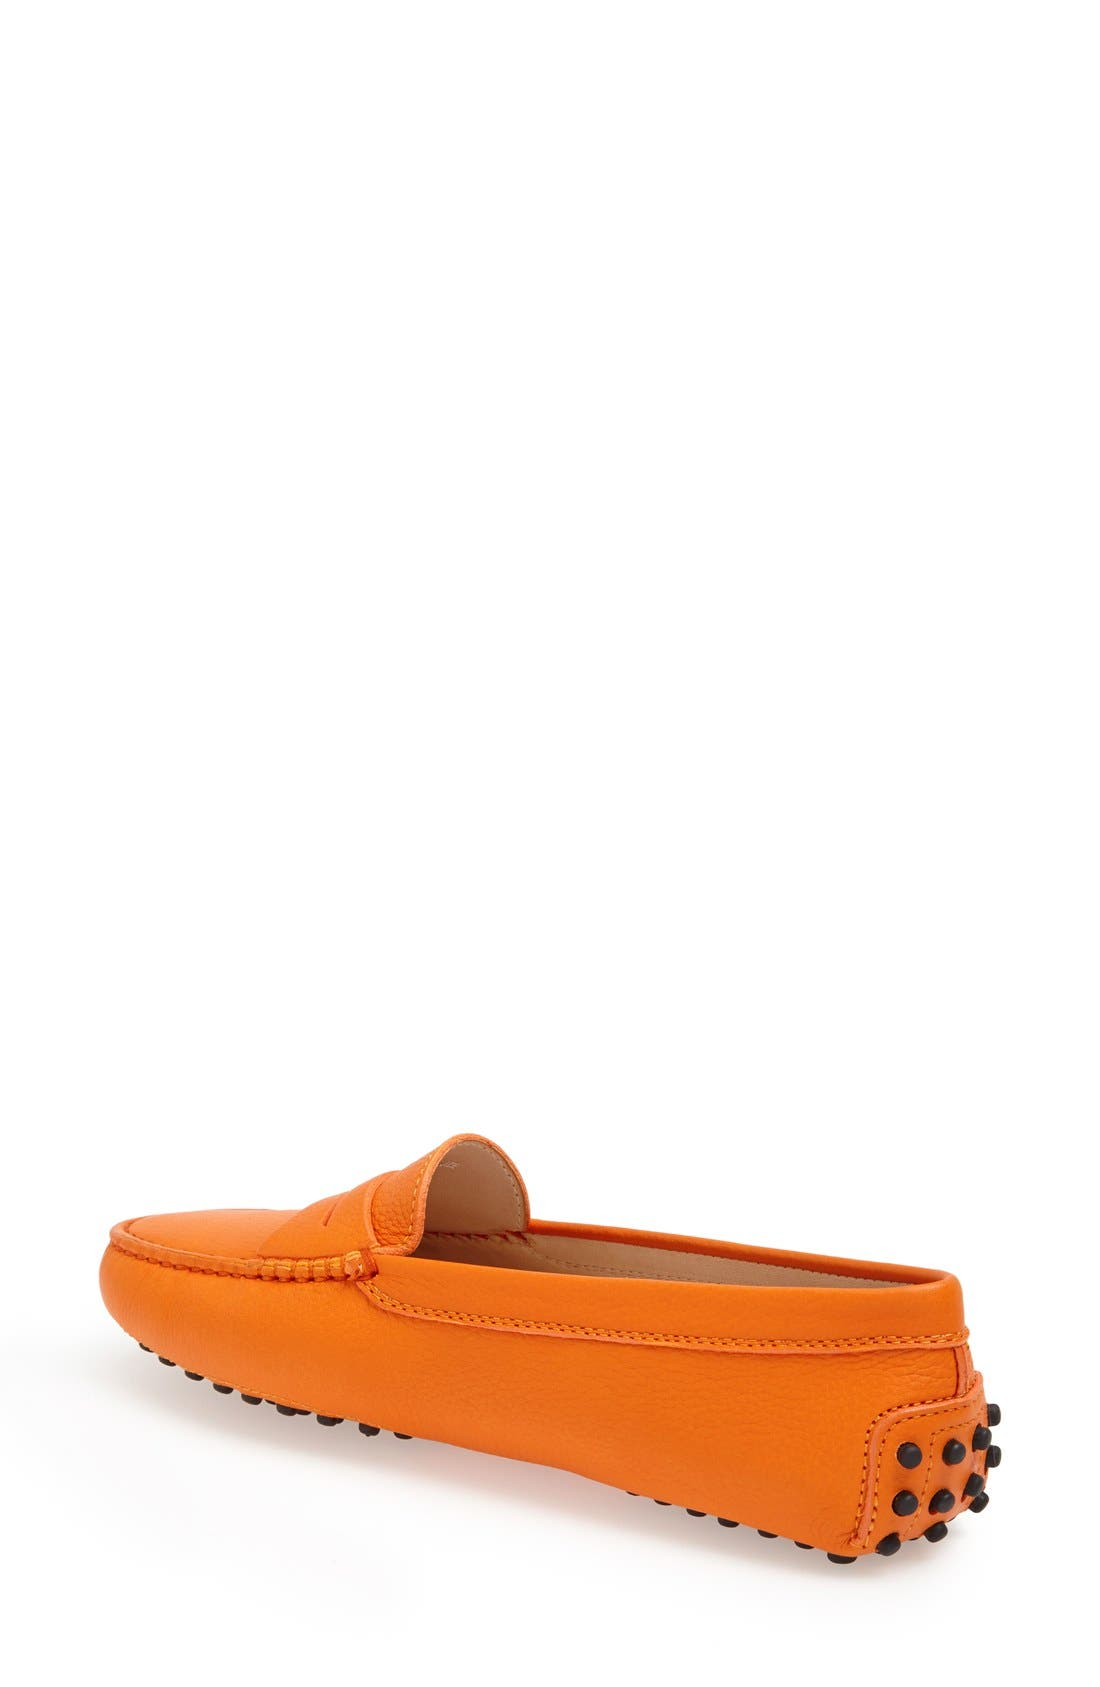 TOD'S, 'Gommini' Driving Moccasin, Alternate thumbnail 6, color, 800